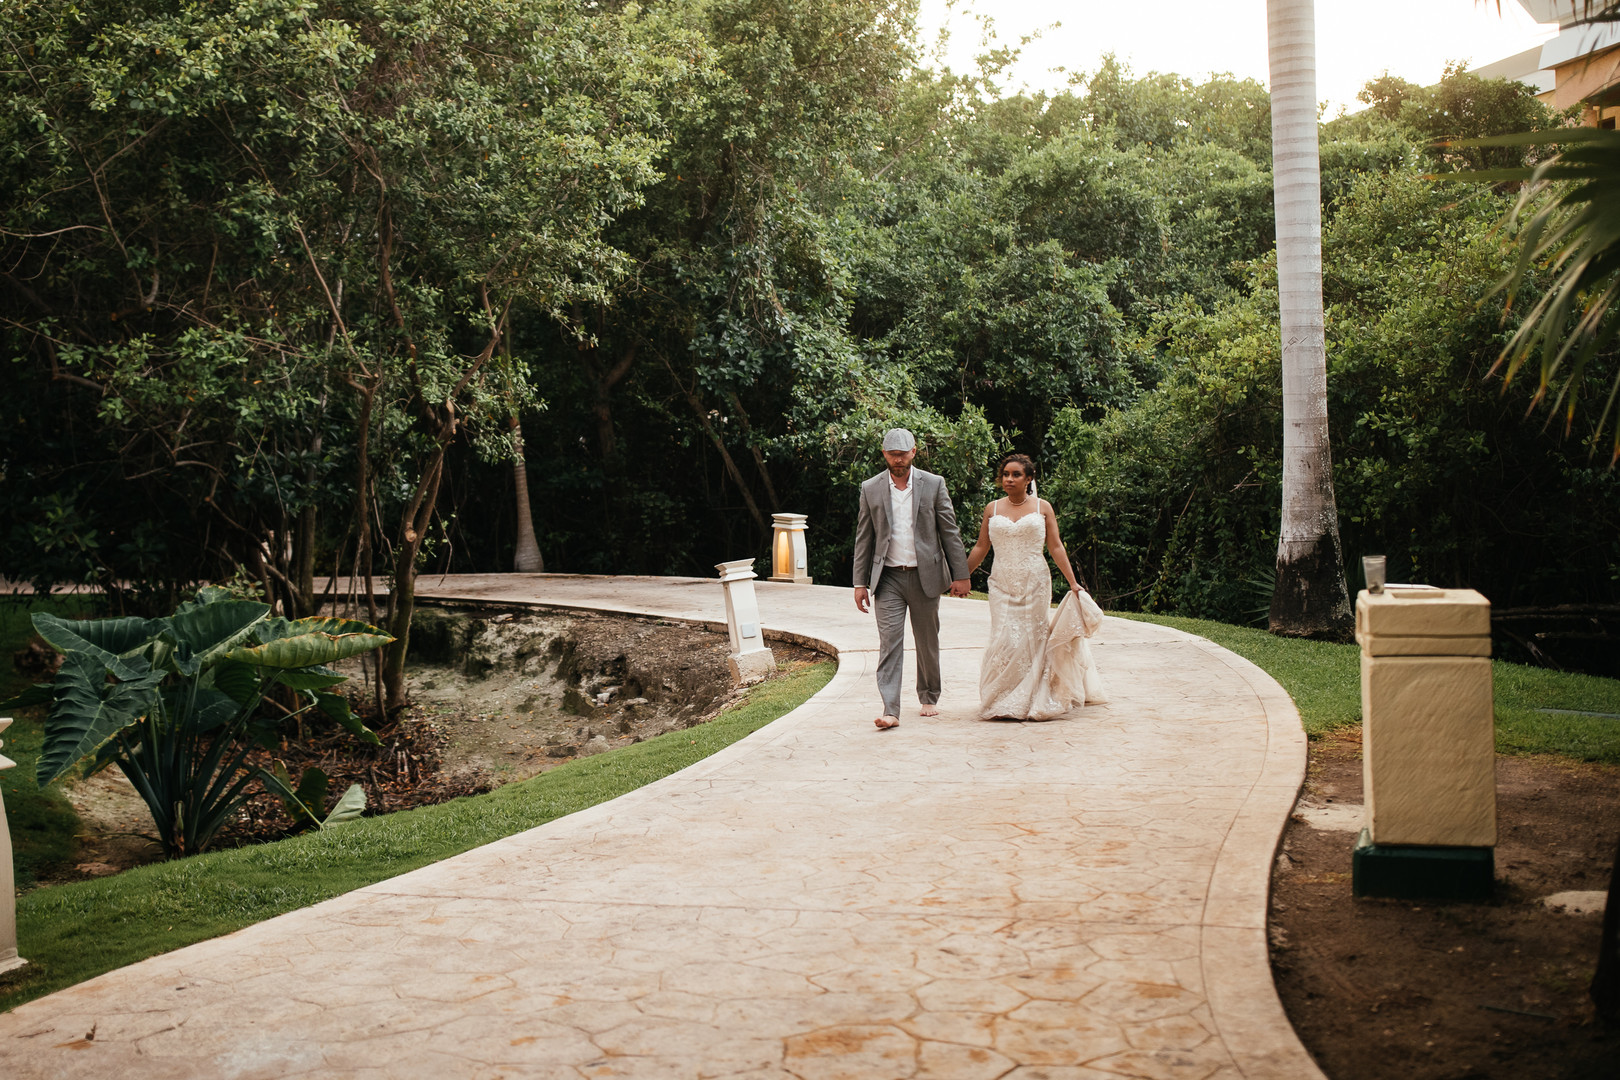 Brittany & Colton's Playa Del Carmen Beach Elopement, Photography by Faces Photography for Destination Wedding Blog Adriana Weddings